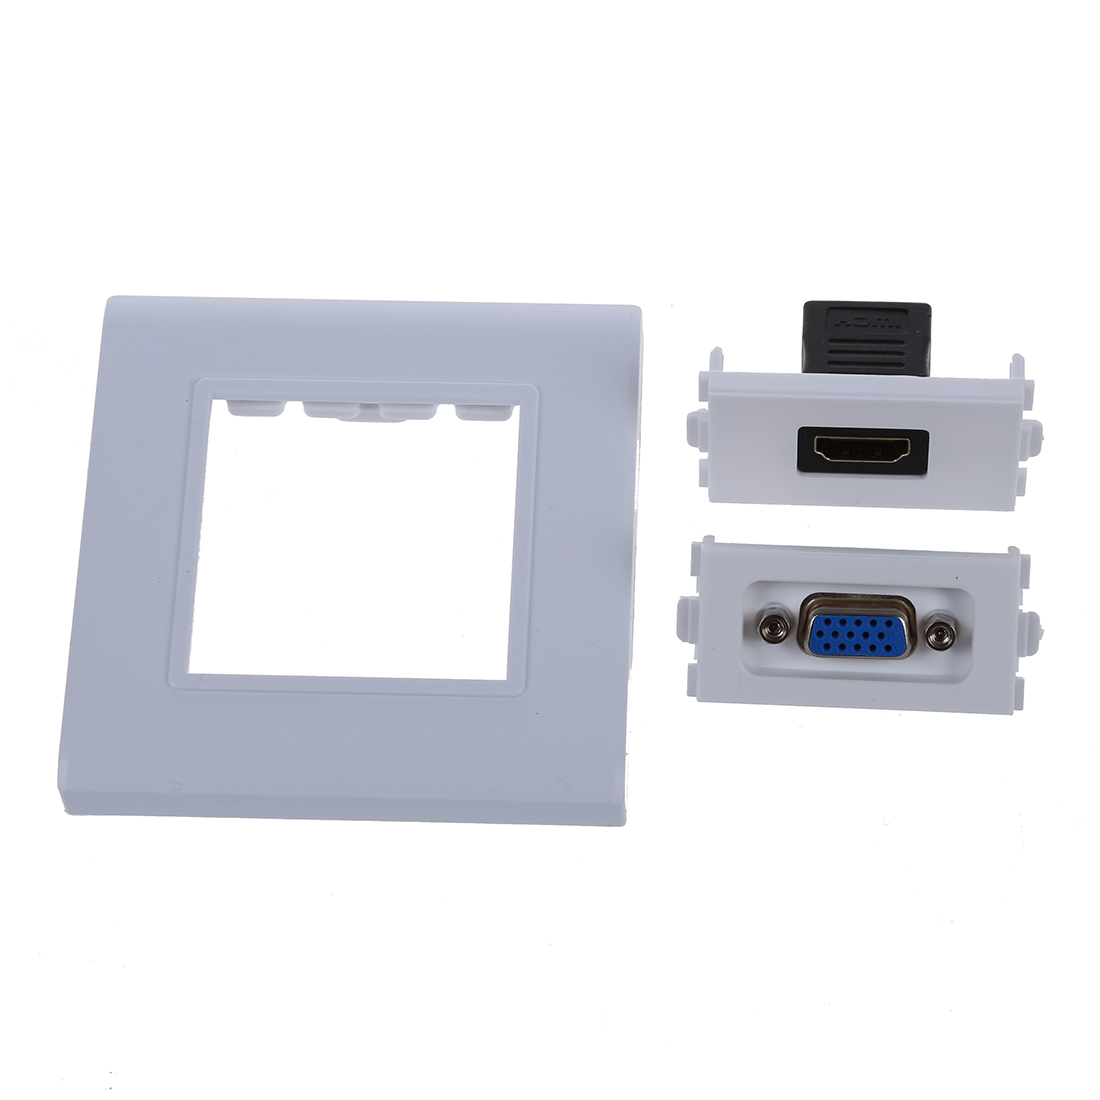 Hdmi Outlet Us 4 35 10 Off Female Hdmi Vga Socket Jack Outlet Component Composite Video Wall Panel Plate On Aliexpress Alibaba Group